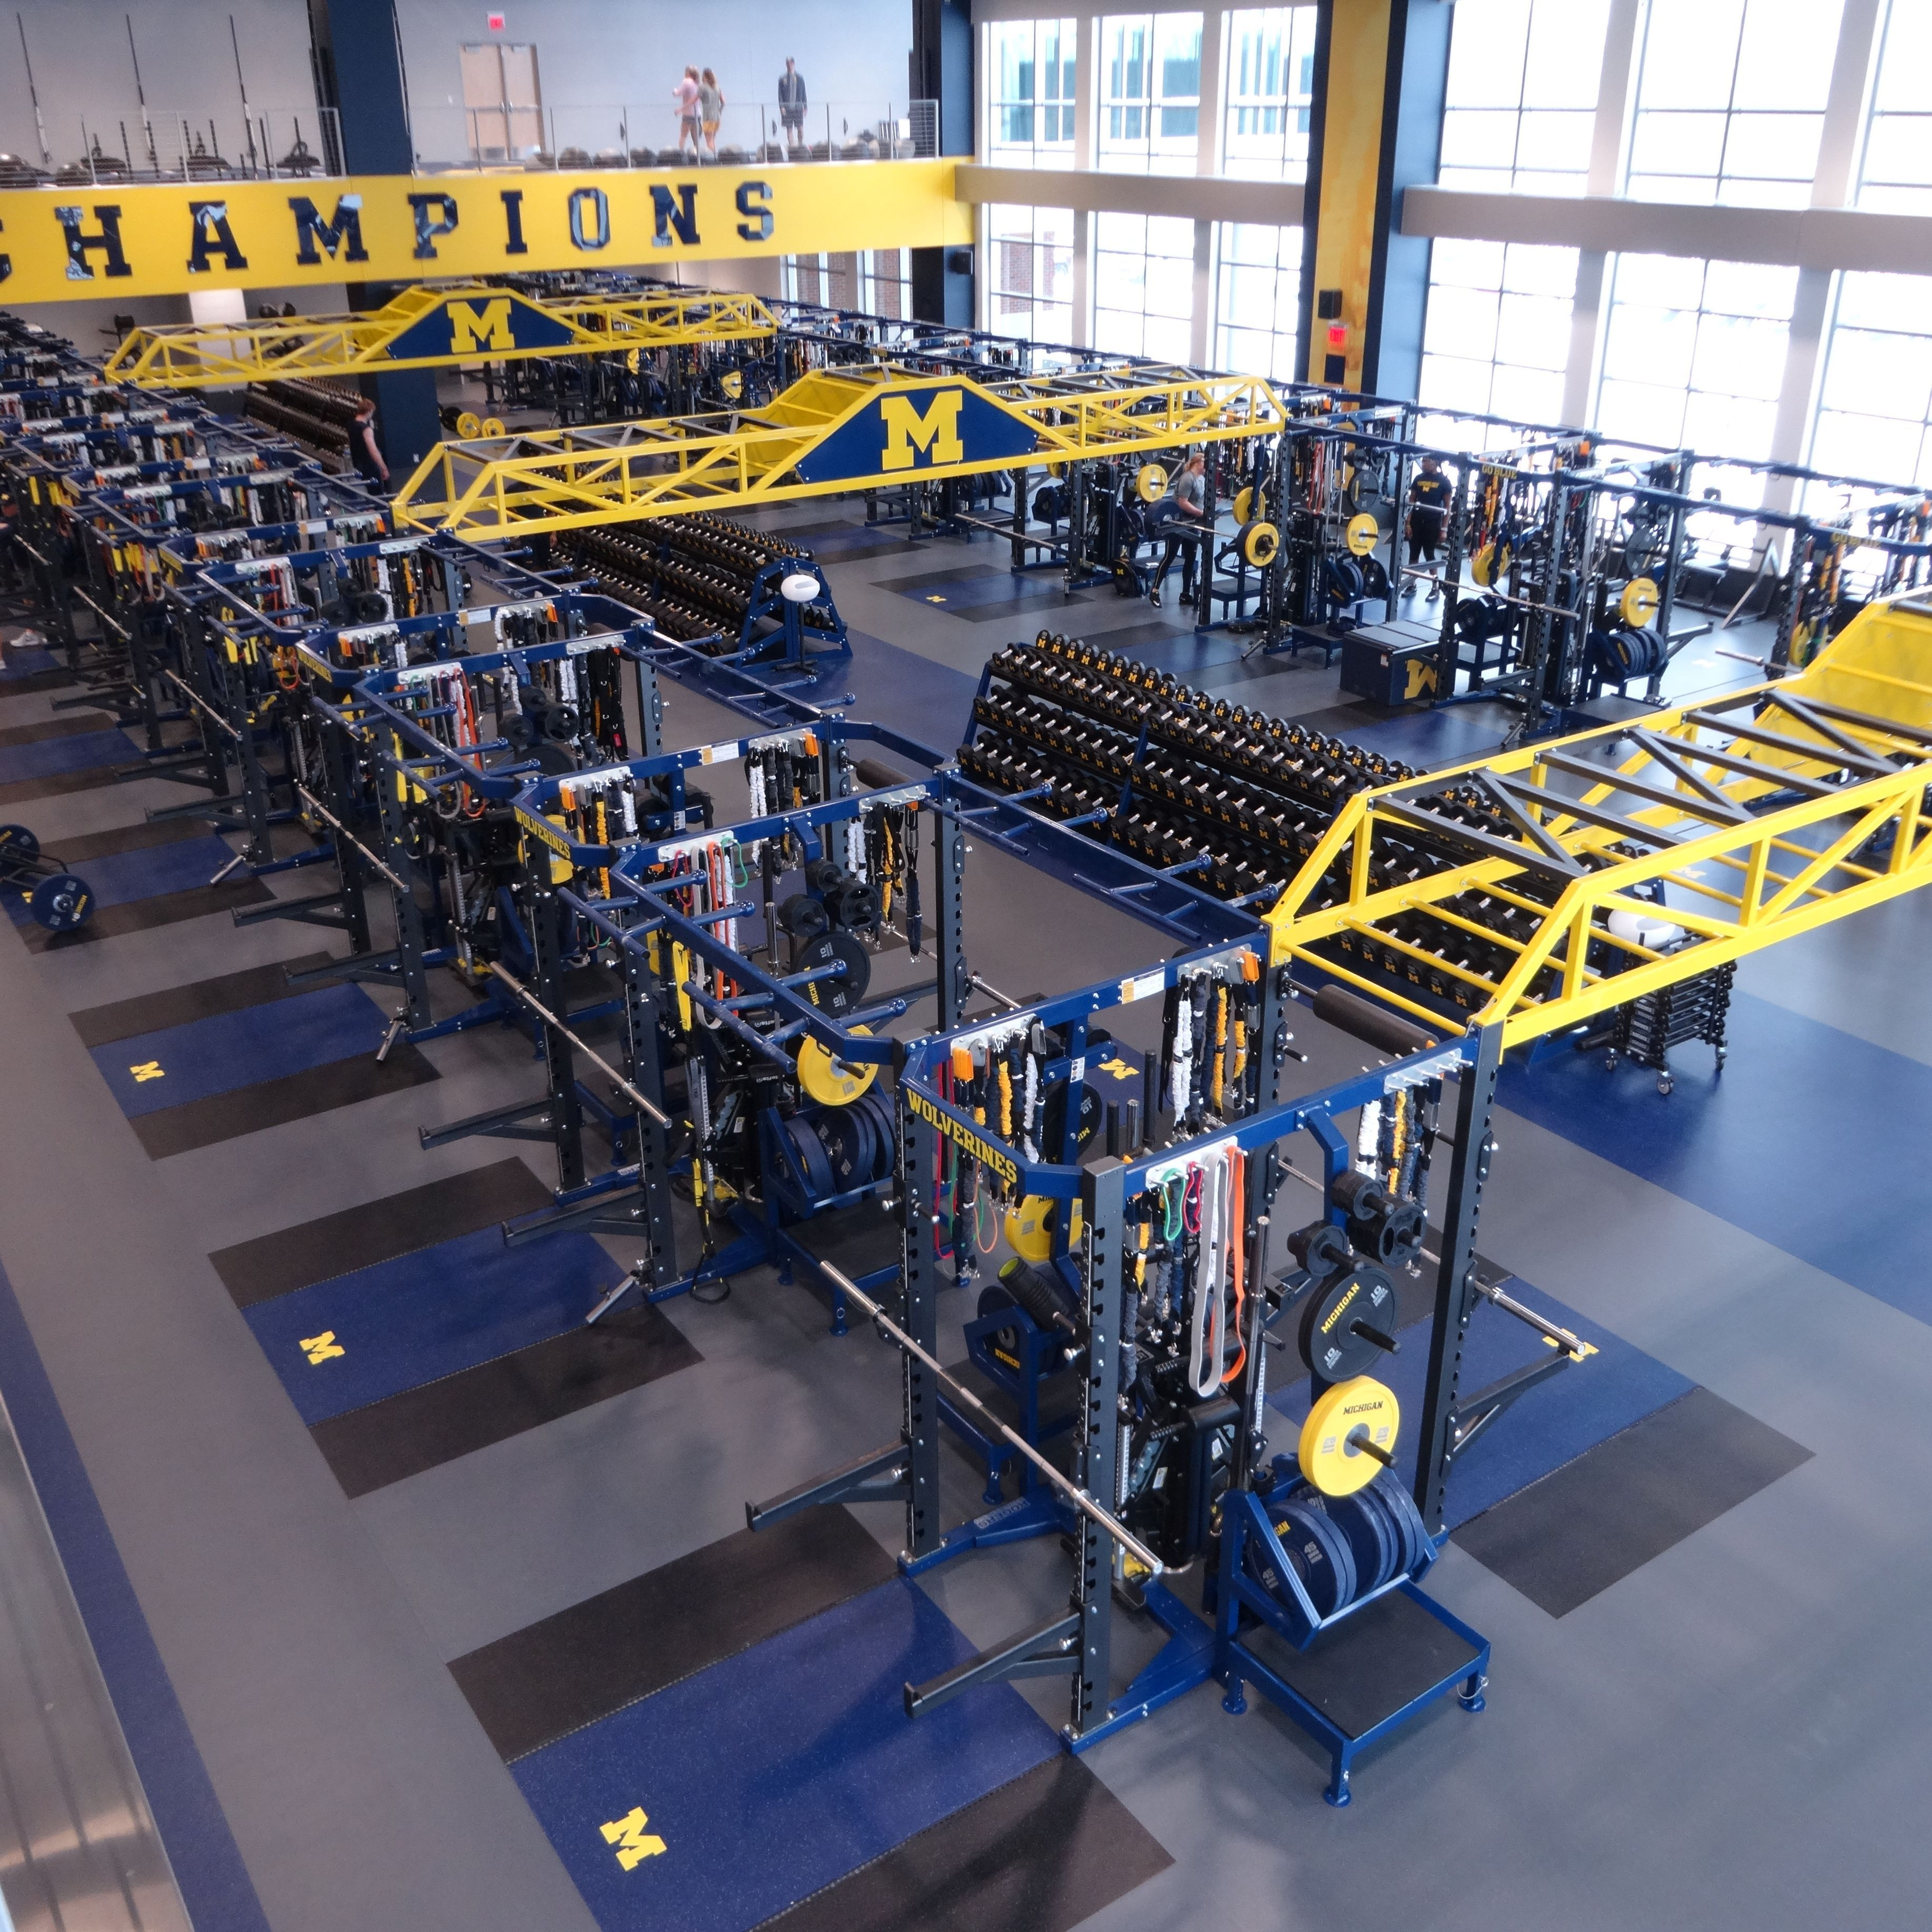 University Of Michigan Olympic Weightroom With Perform X Training Systems Https Www Perform X Com Michigan Football Michigan Sports Michigan